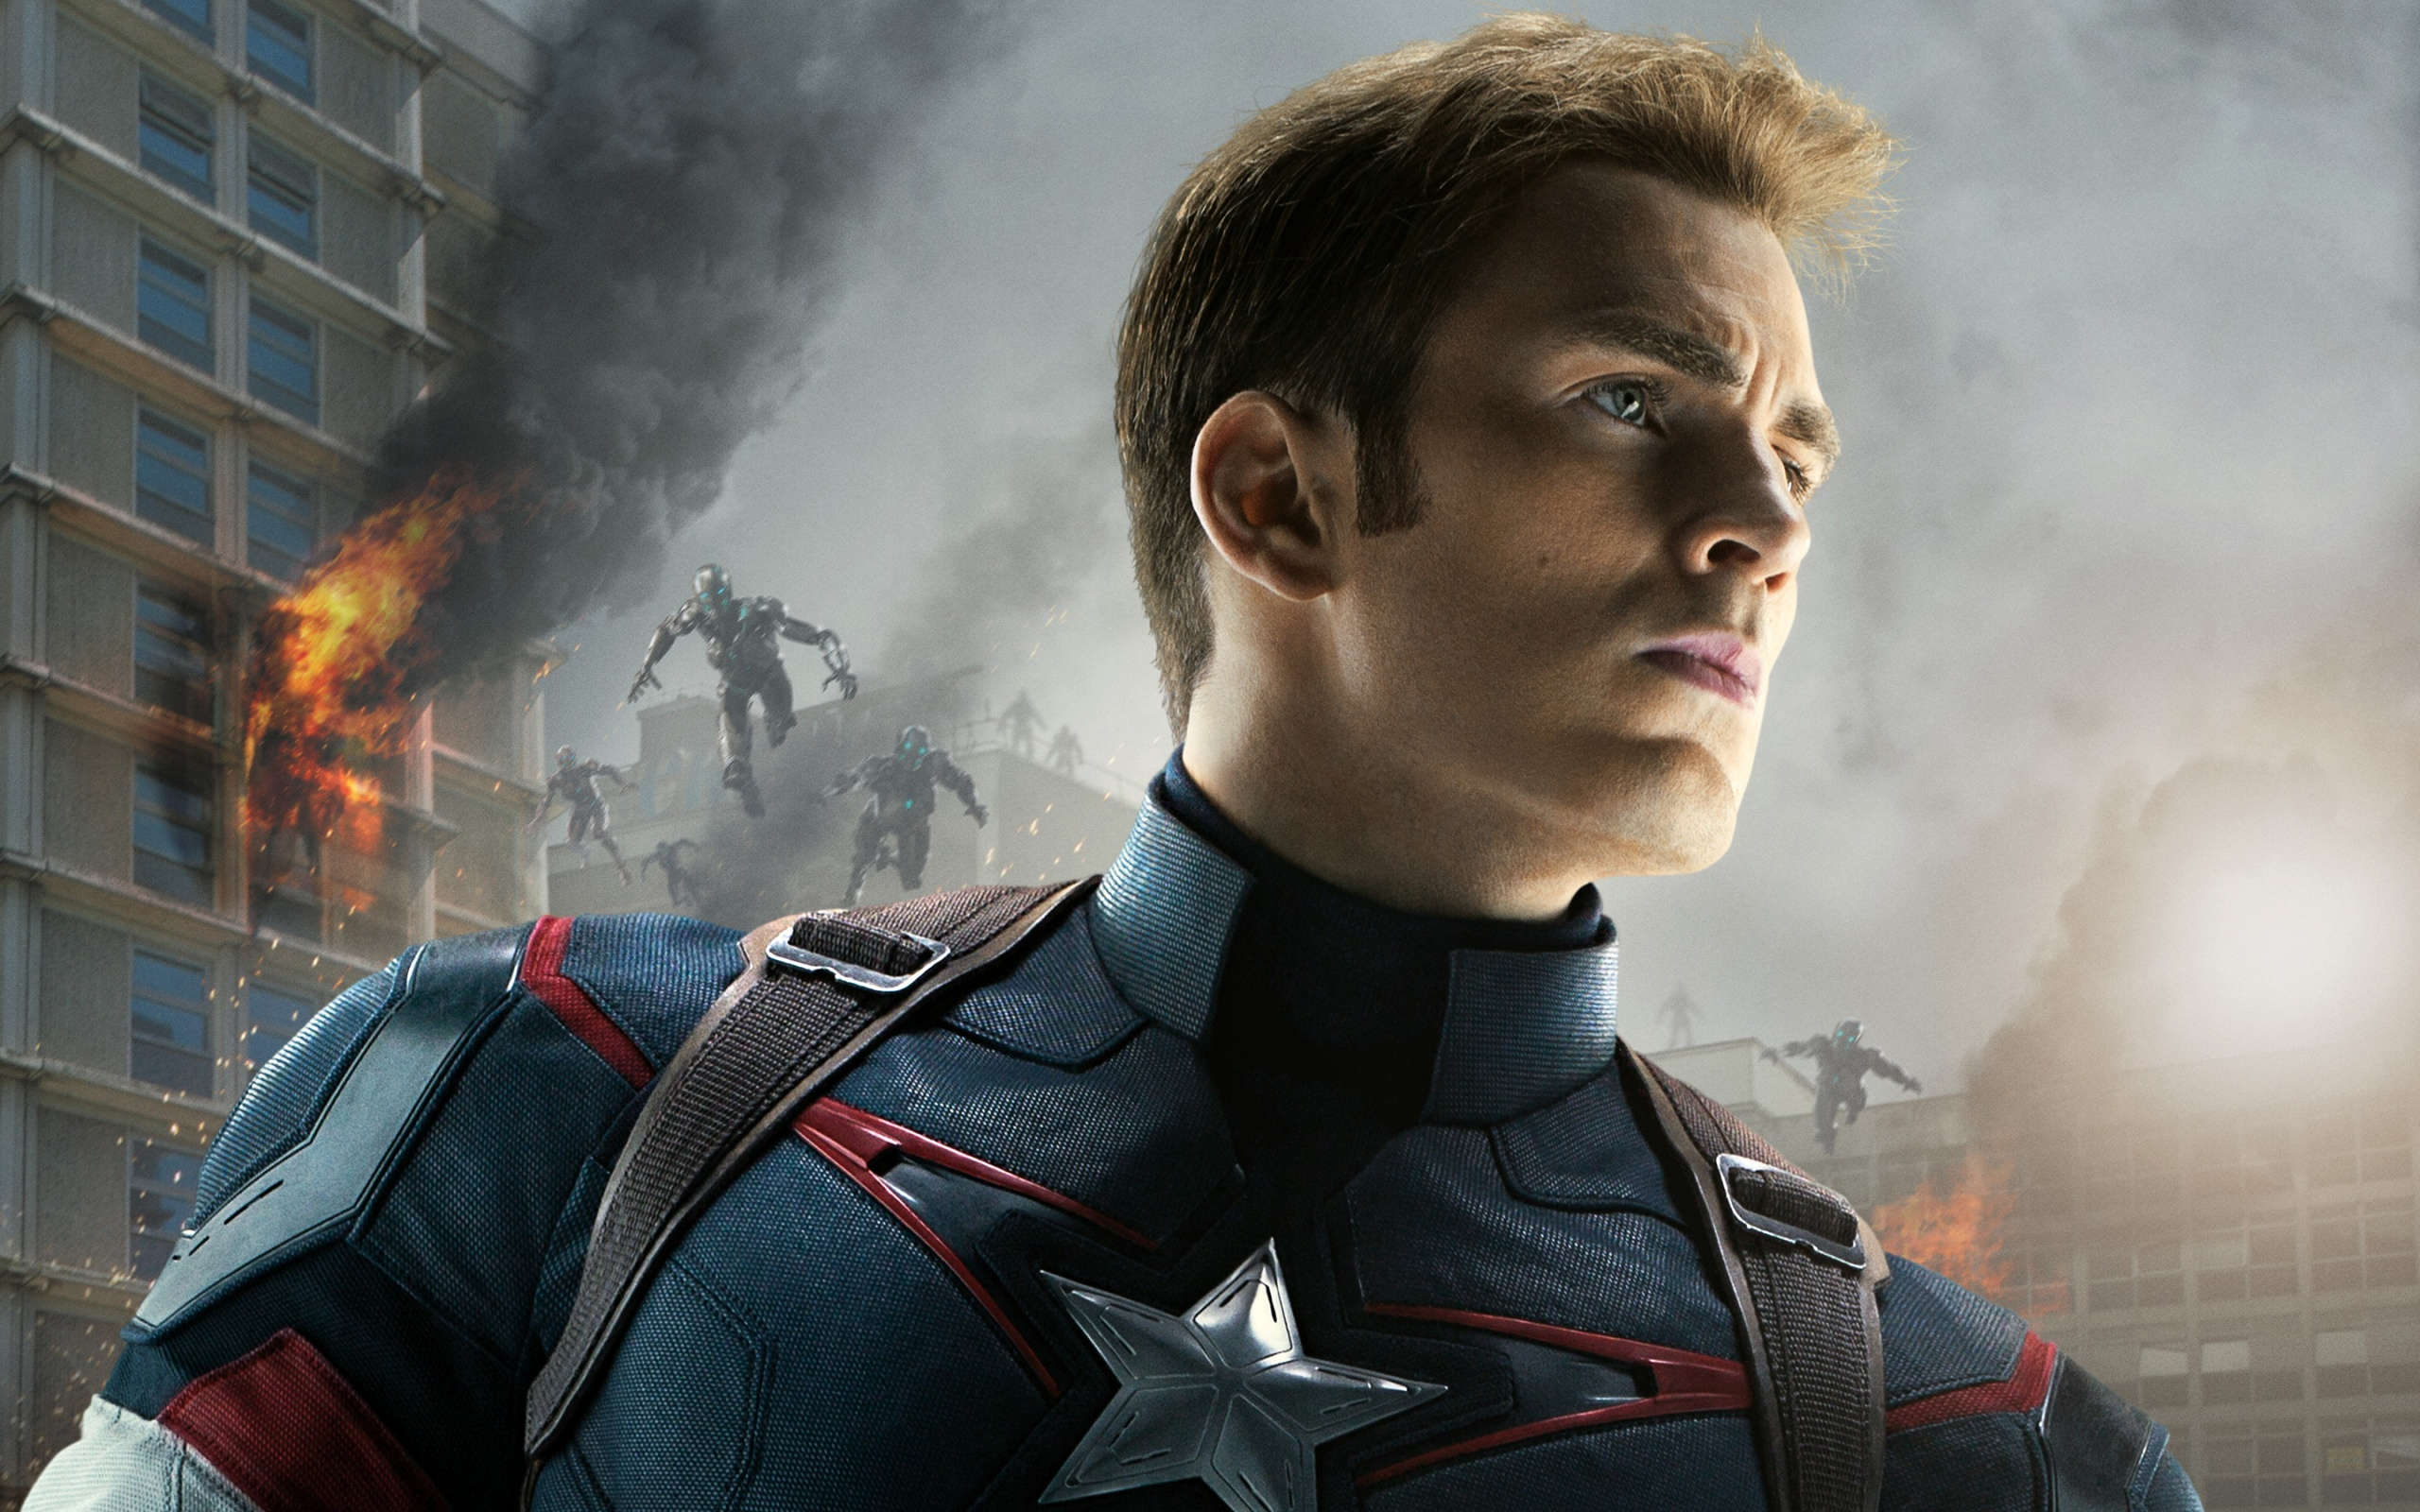 Captain America images Captain America HD wallpaper and background photos